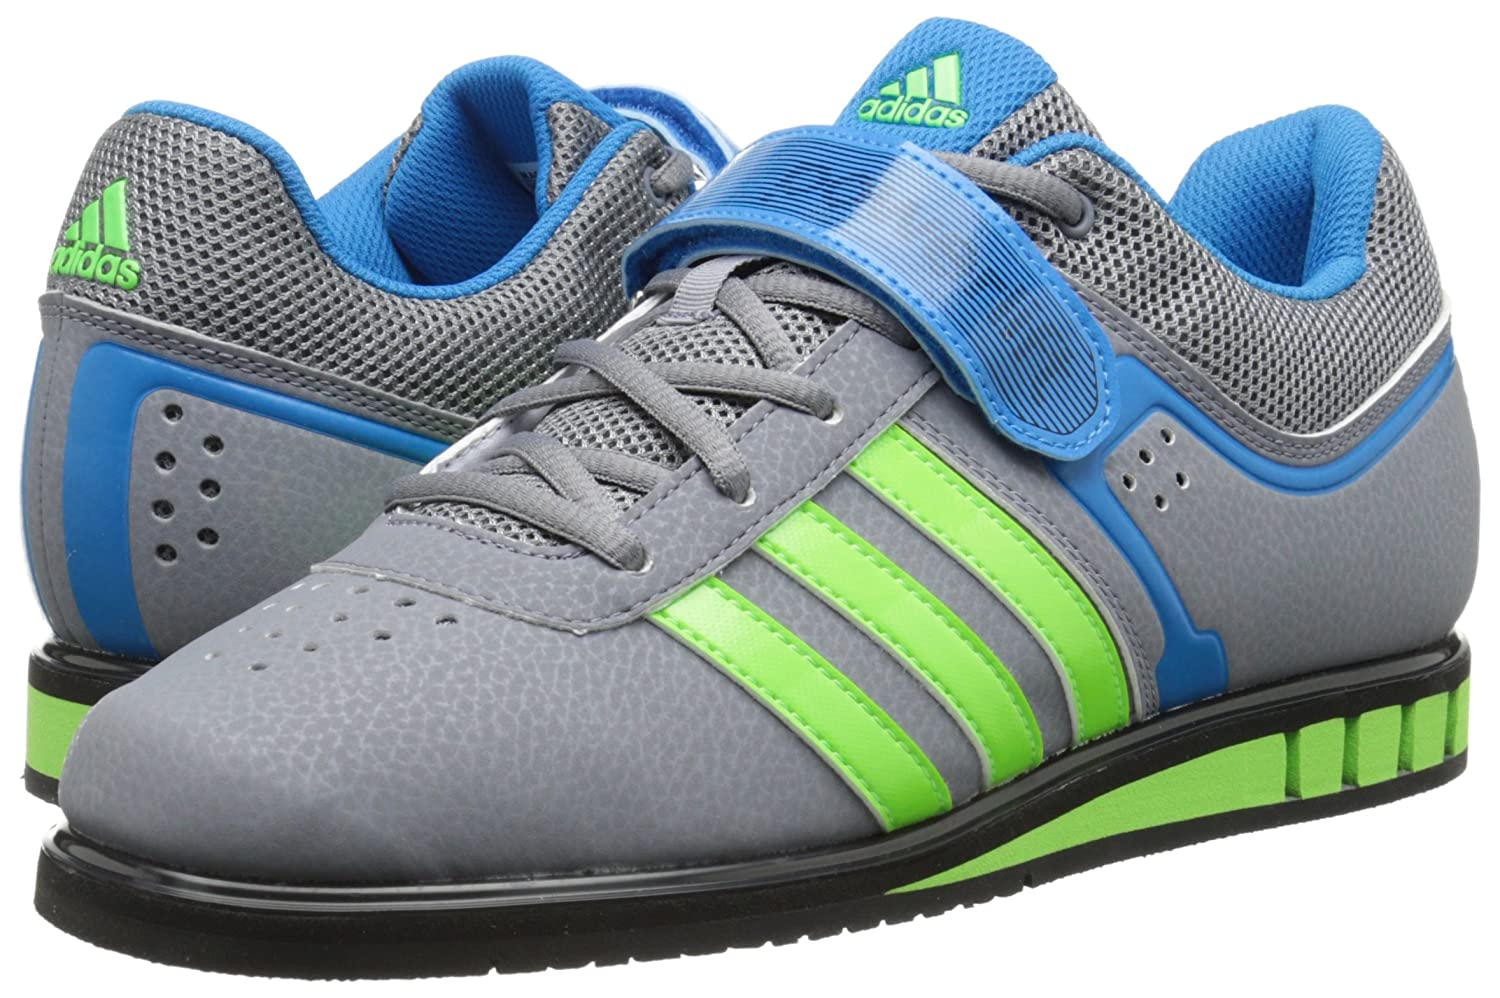 reputable site 715c8 38a29 adidas Performance Mens Powerlift.2 Trainer Shoe, GreyNeon GreenSolar  Blue, 8.5 M US Amazon.co.uk Shoes  Bags